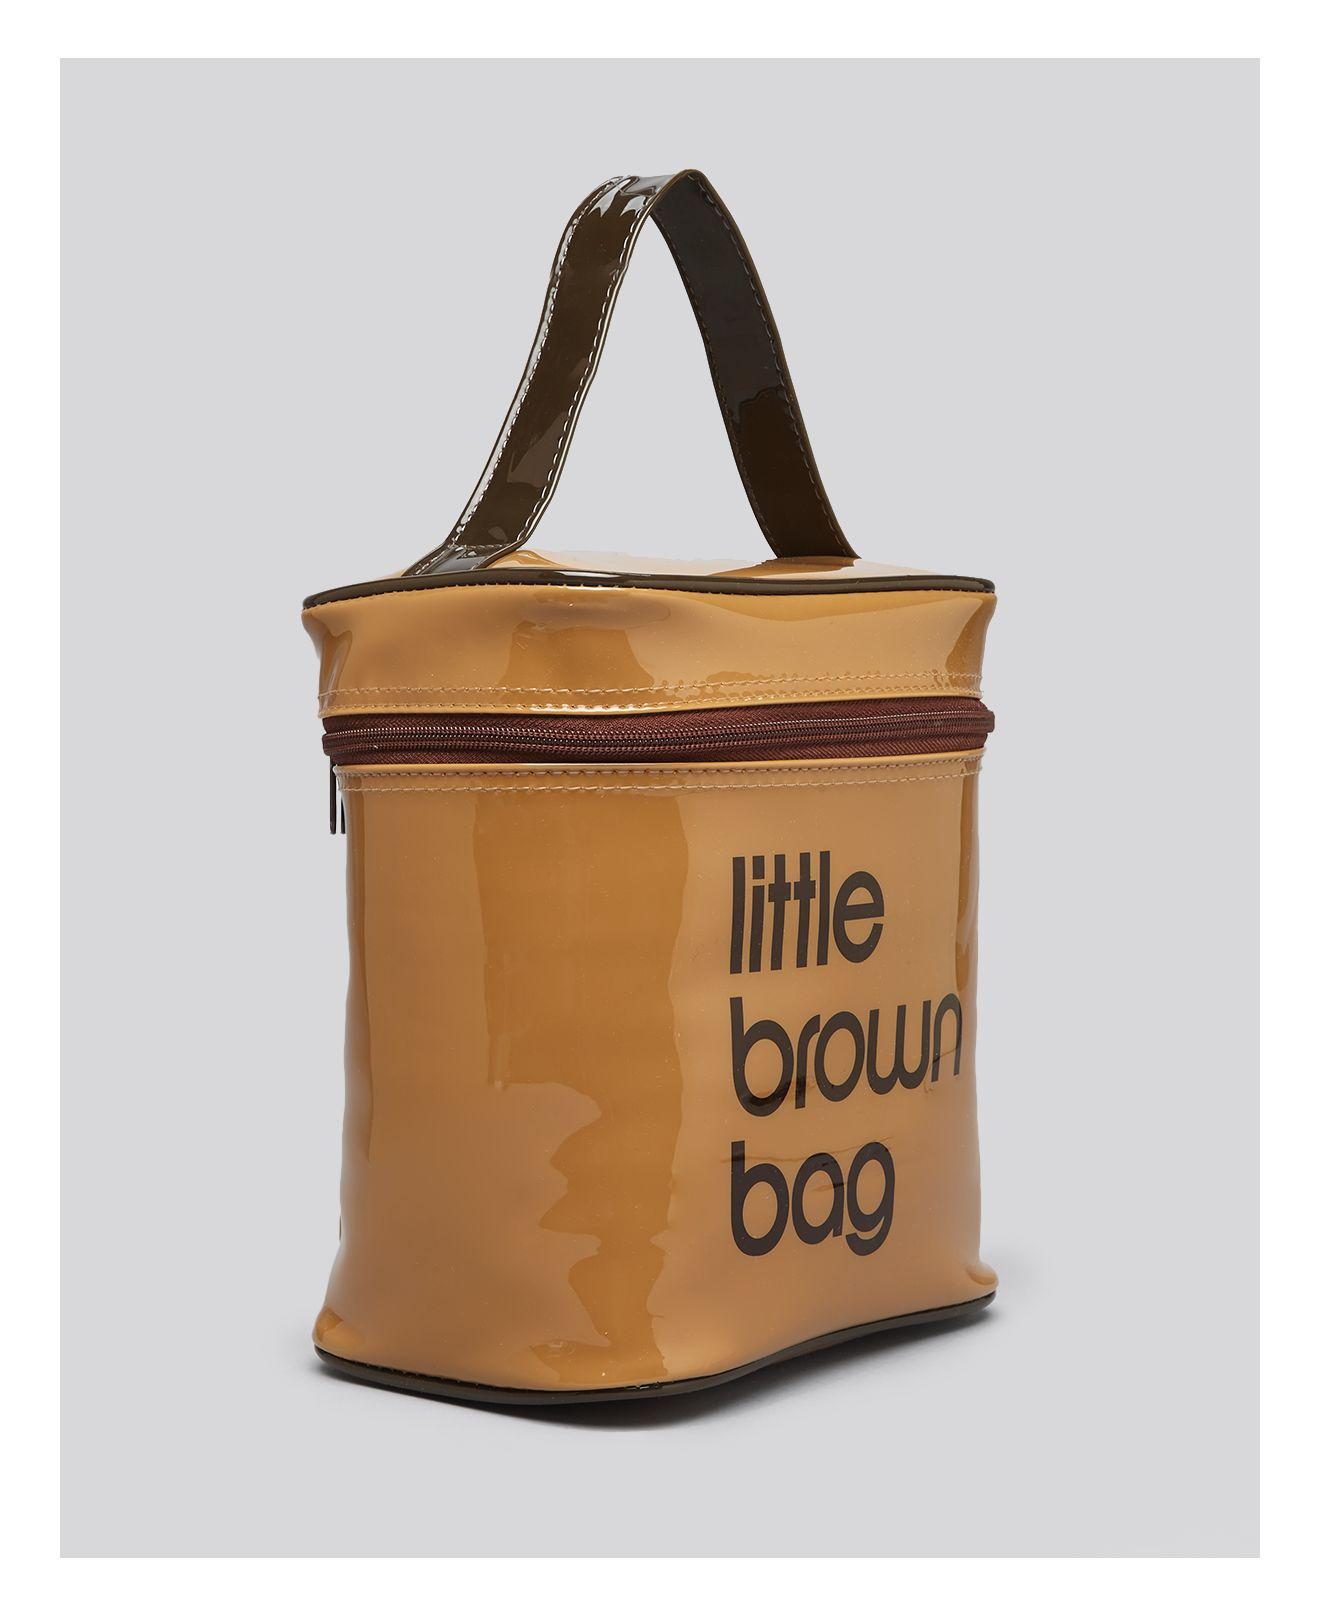 Bloomingdale s Little Brown Bag Lunch Tote in Brown - Lyst 92977b5a4a